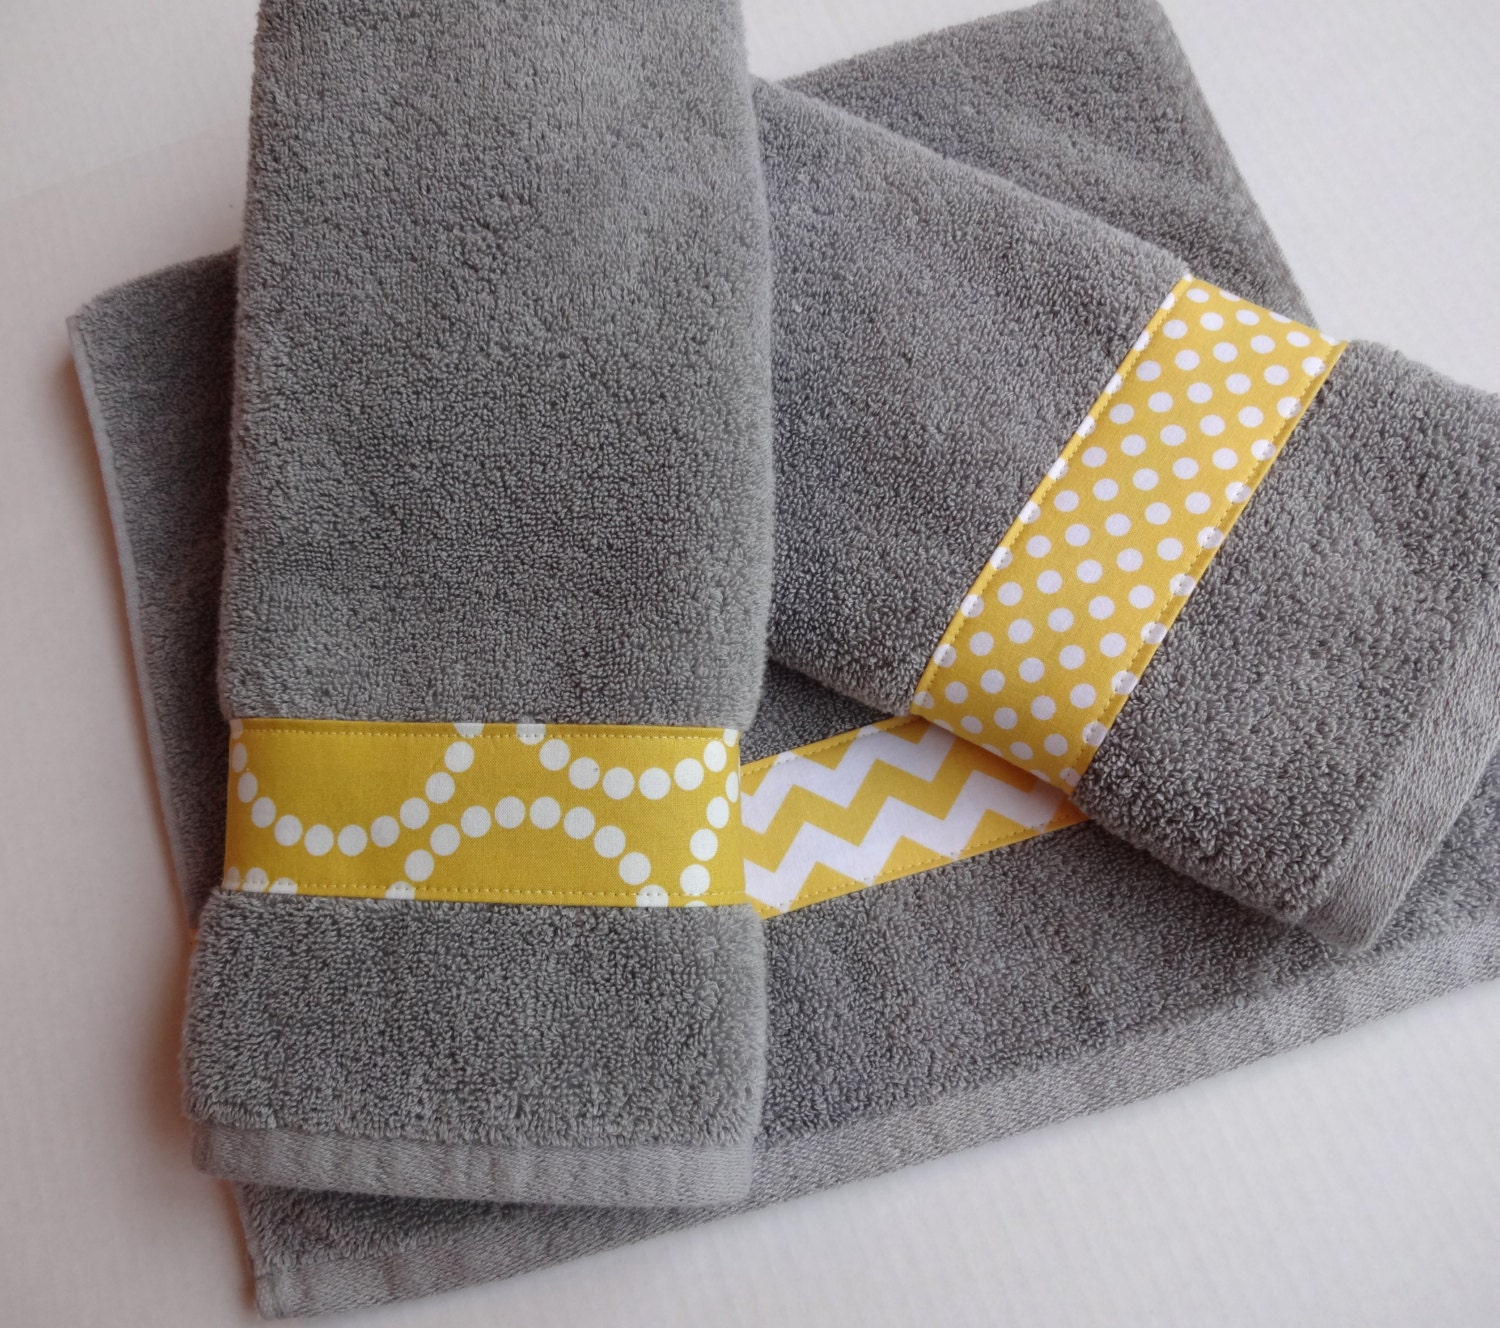 yellow and grey towel hand towels yellow and greyaugustave. Bathroom Hand Towels nice ideas   A1houston com